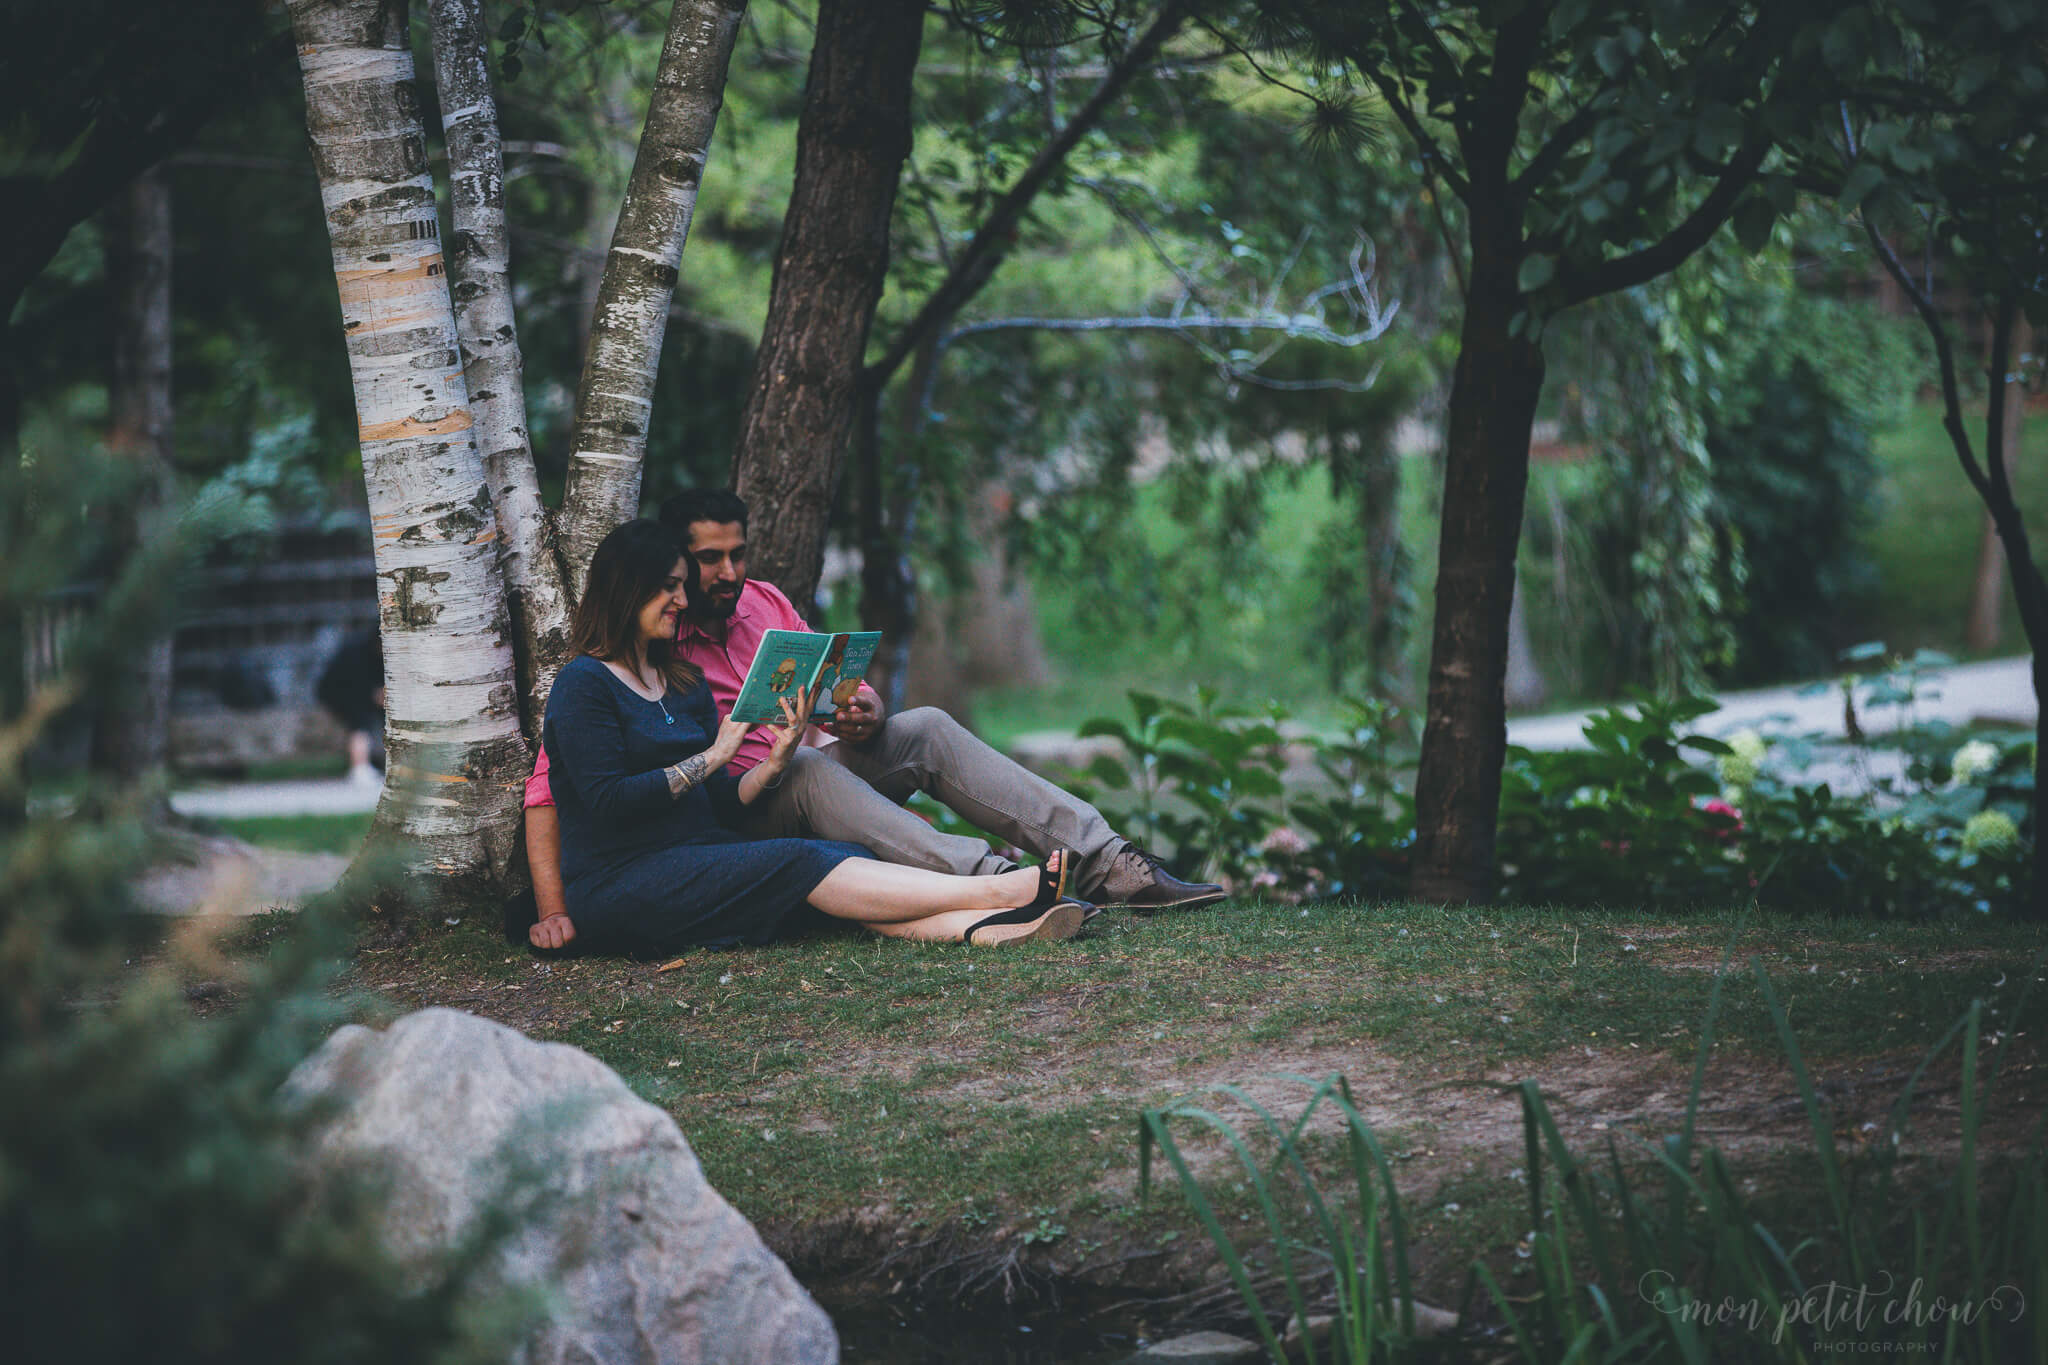 Mom and dad sitting in Kariya Park in Toronto reading a children's book during a maternity photo shoot.